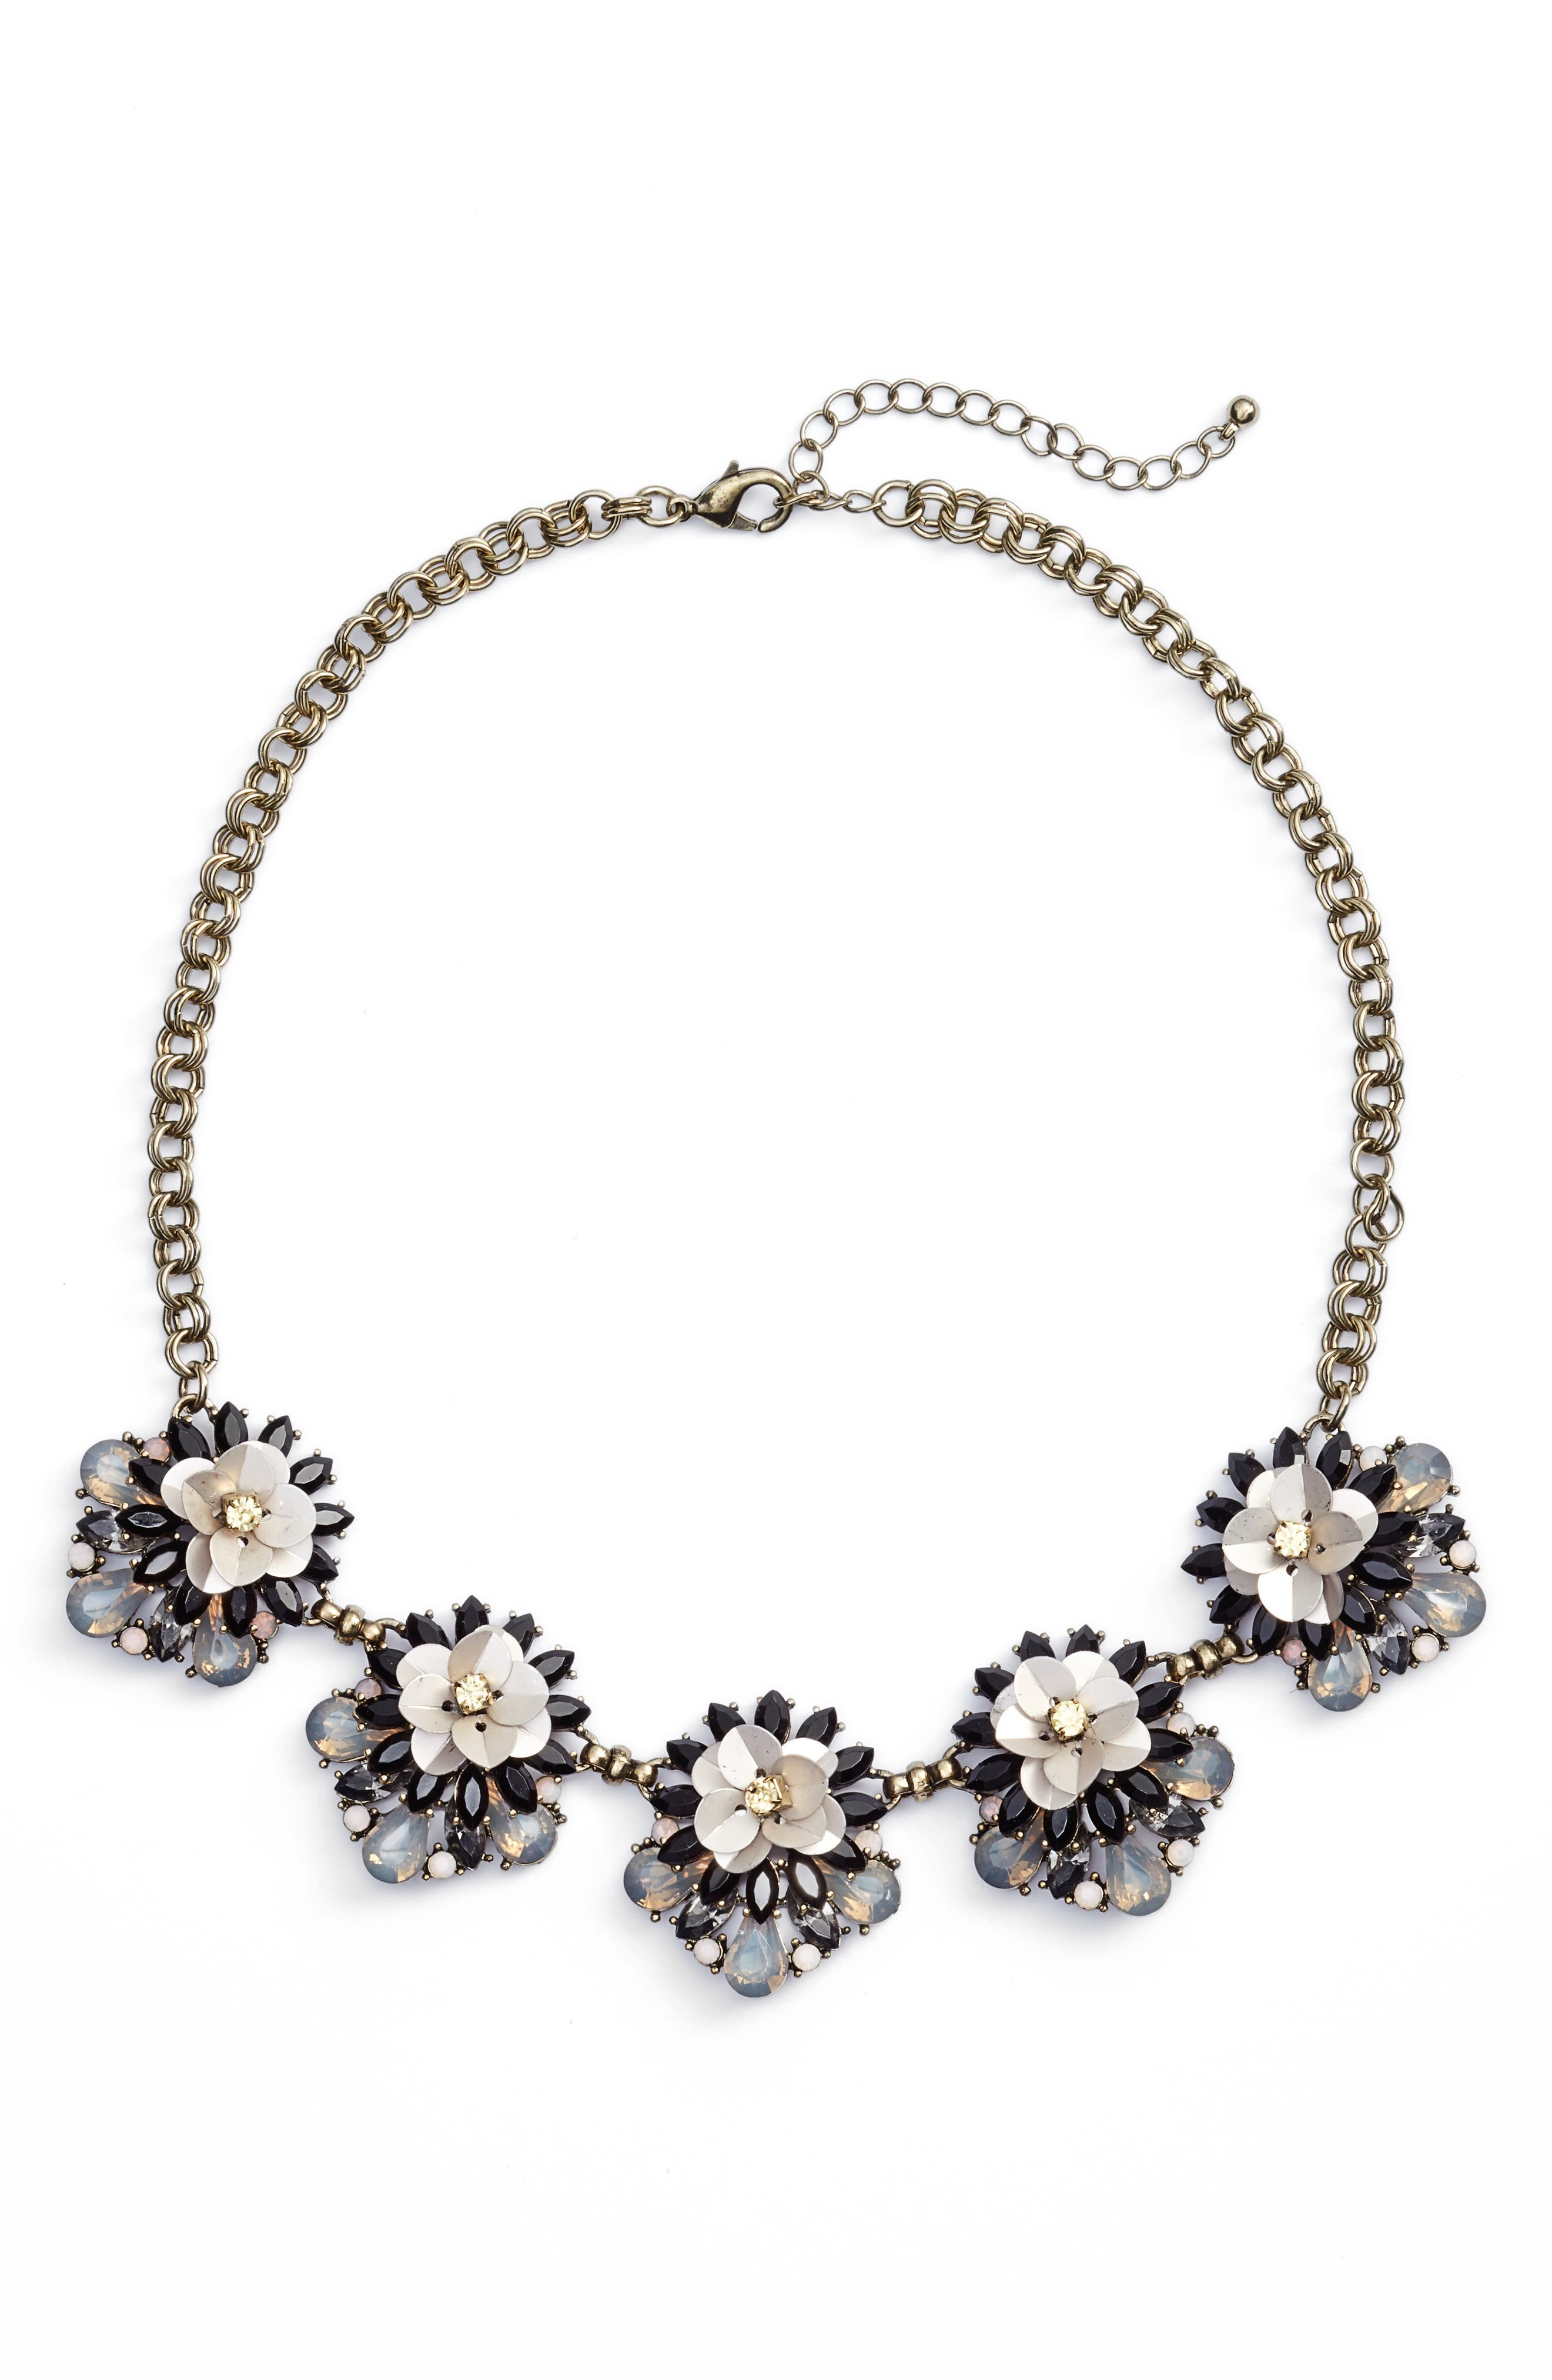 Main Image - Sole Society Floral Cluster Statement Necklace